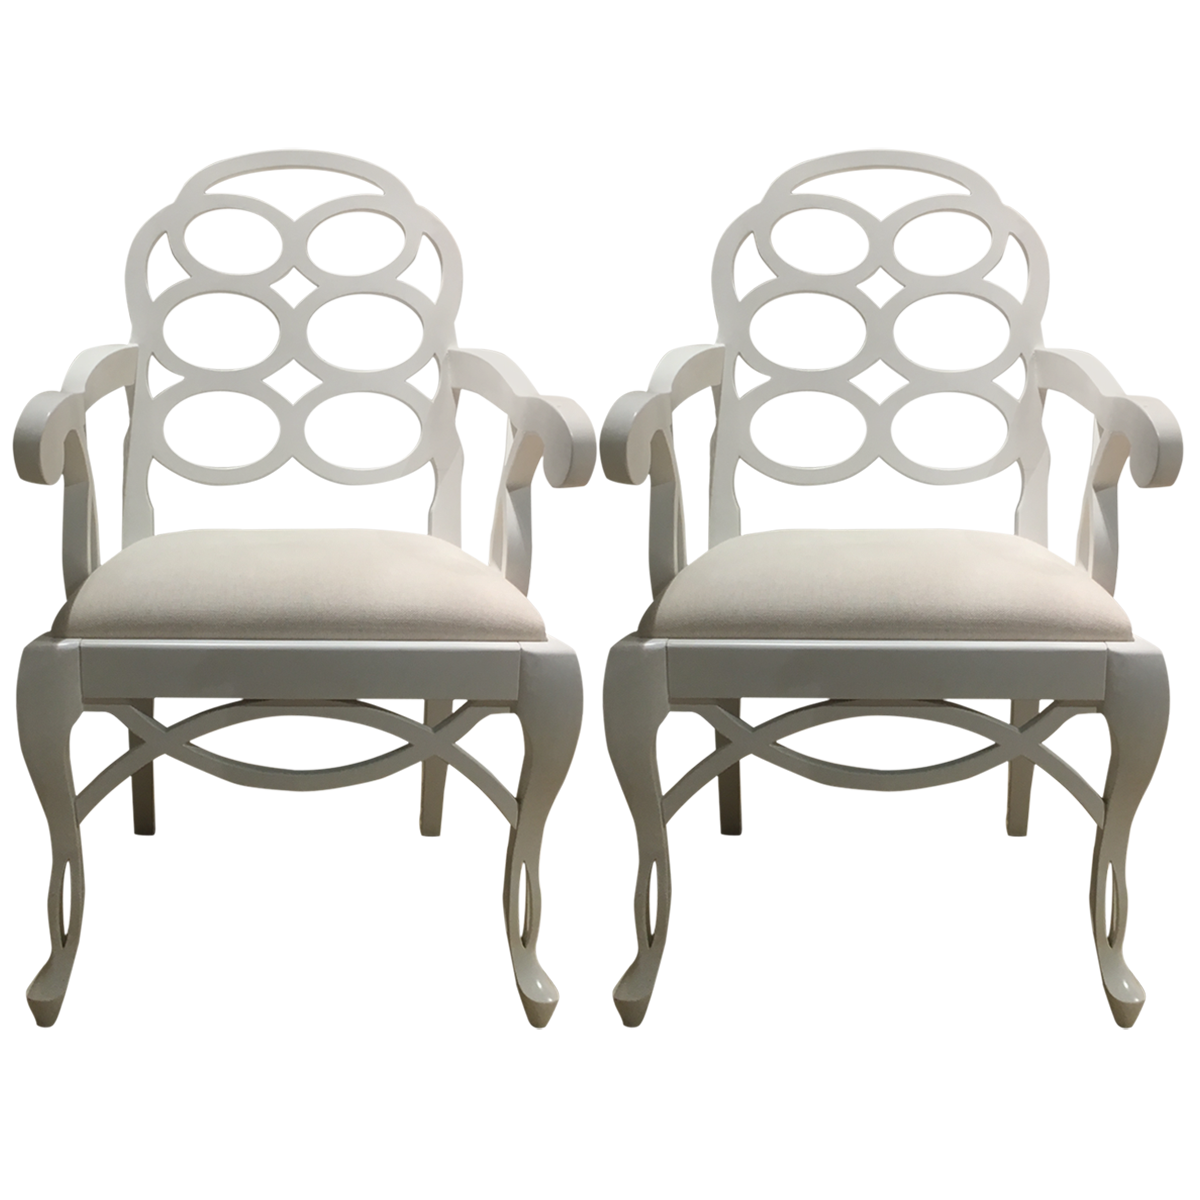 Wondrous Loop Lacquered Mahogany Armchairs Accent Chairs Accent Evergreenethics Interior Chair Design Evergreenethicsorg